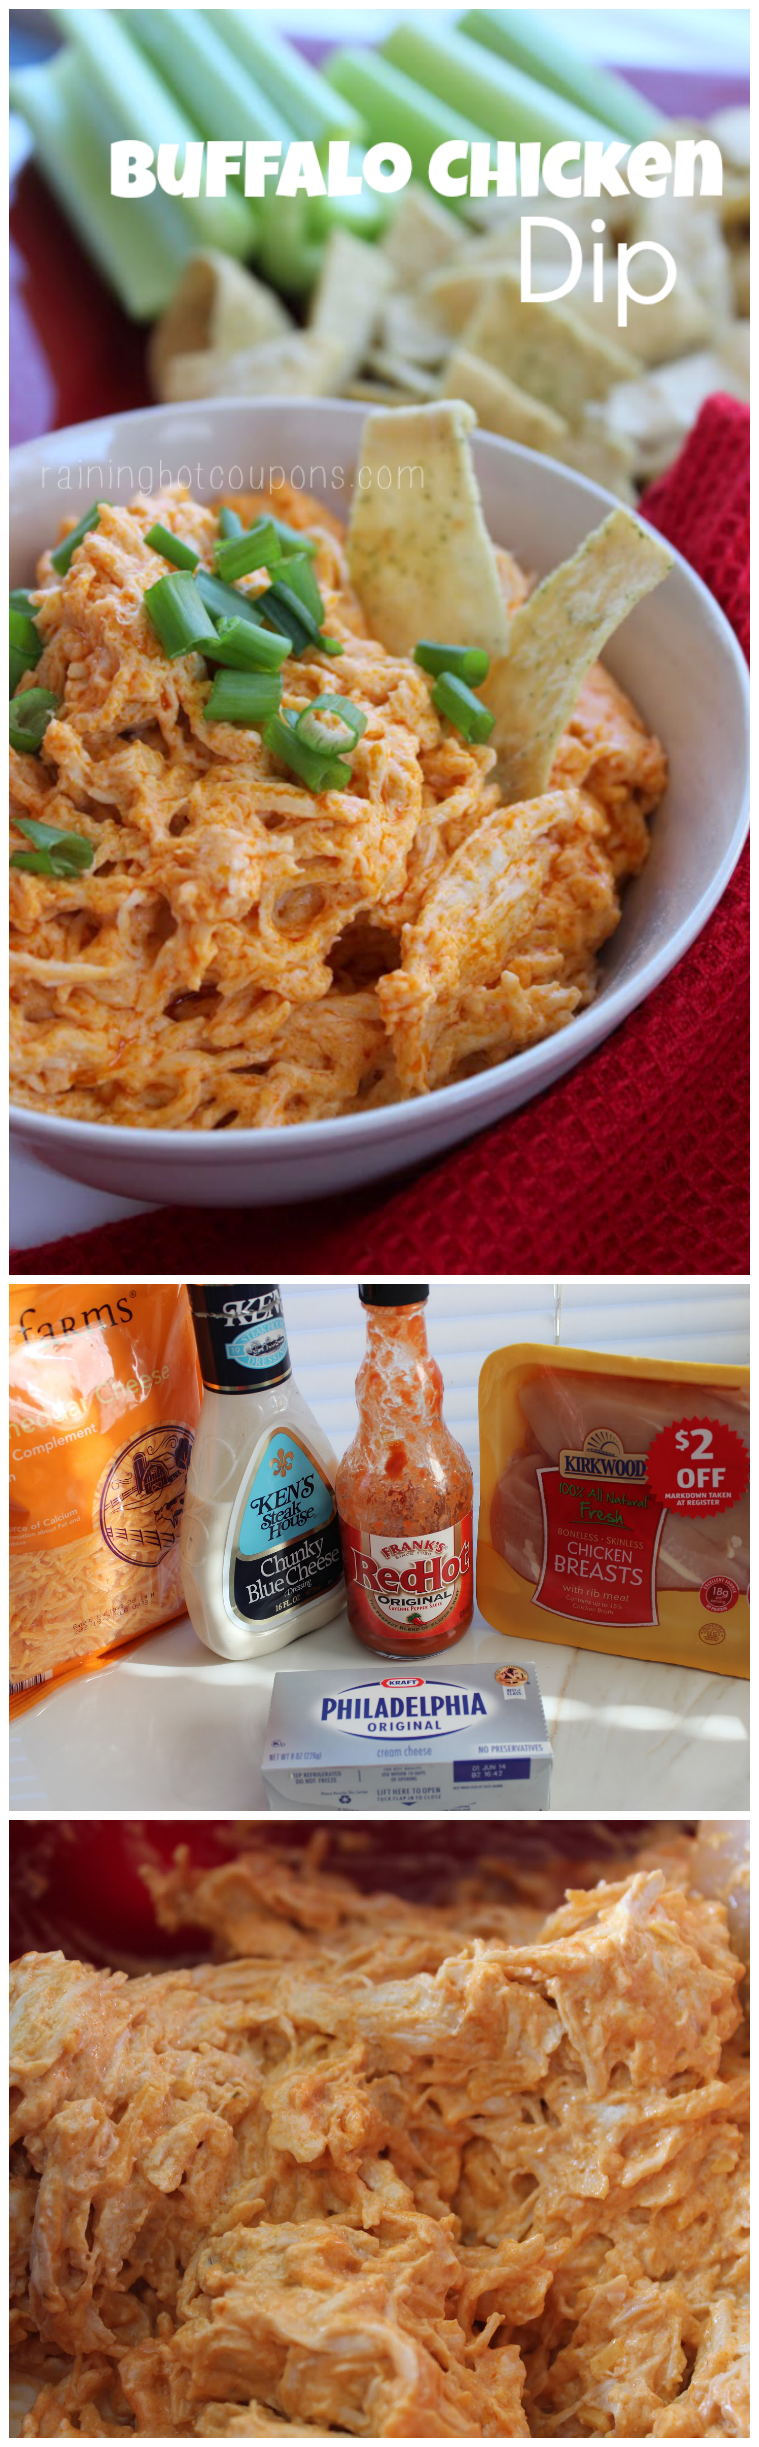 buffalo chicken dip collage